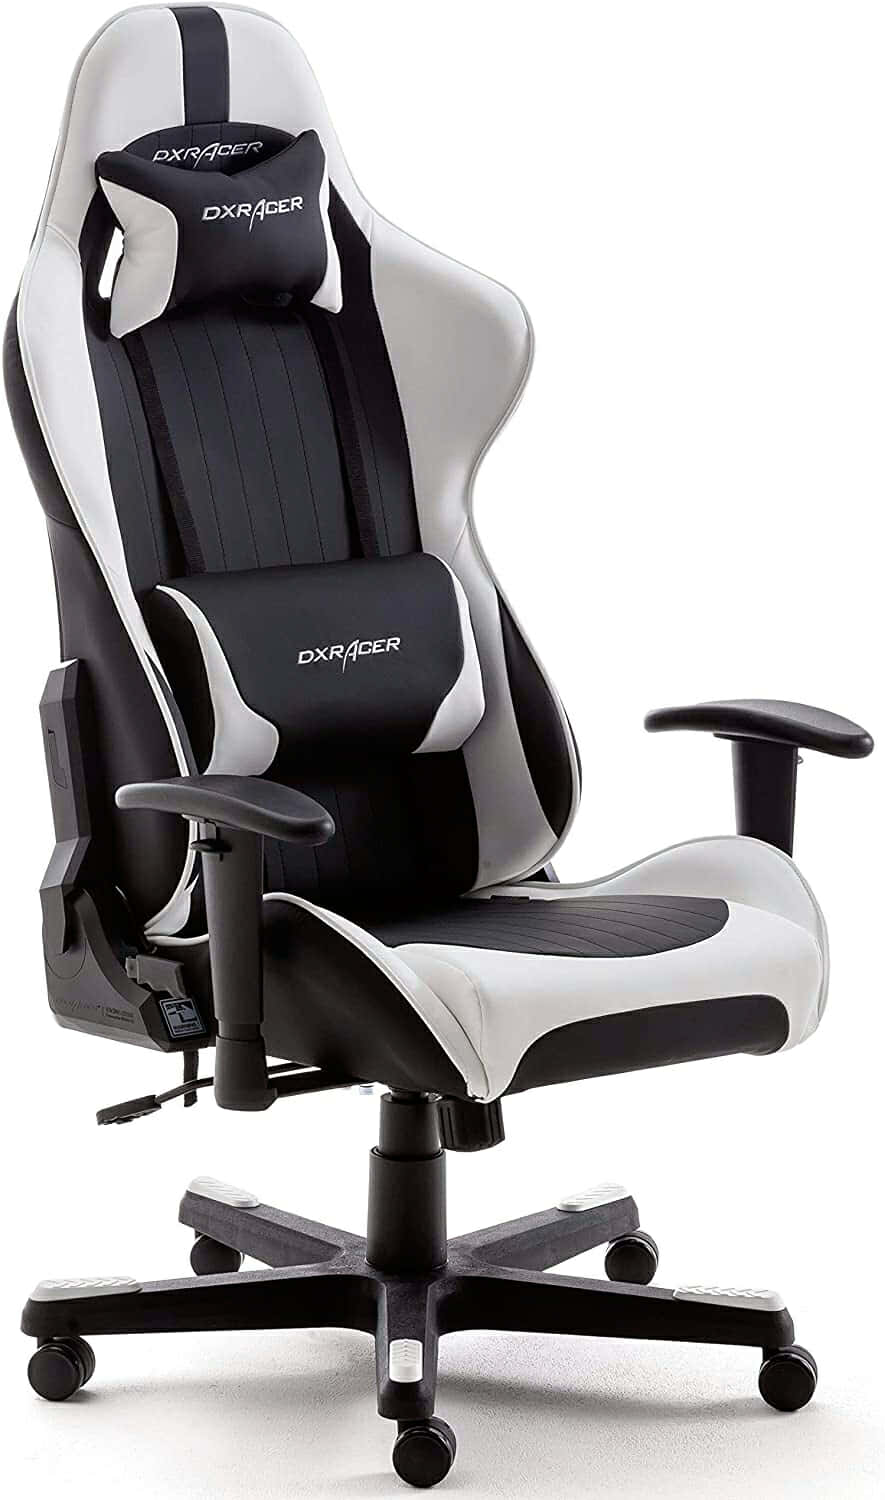 DX Racer 6 62506SW5 - Silla gaming, color negro/blanco, 78 x 52 x 124-134cm